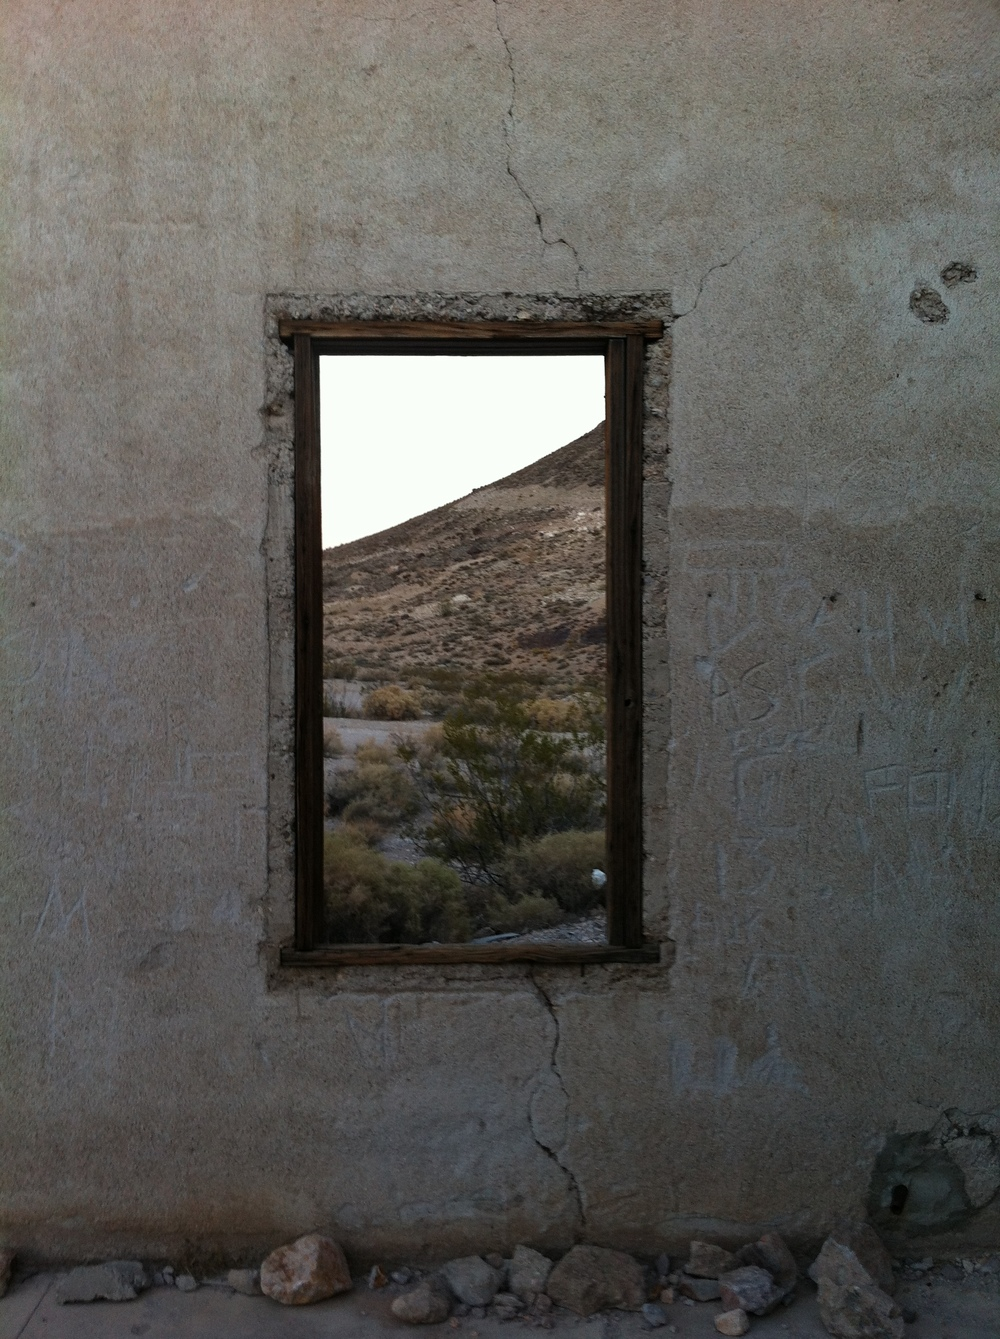 Empty window, Rhyolite Jail: one thing to note - the jail door is intact, and locked solid.